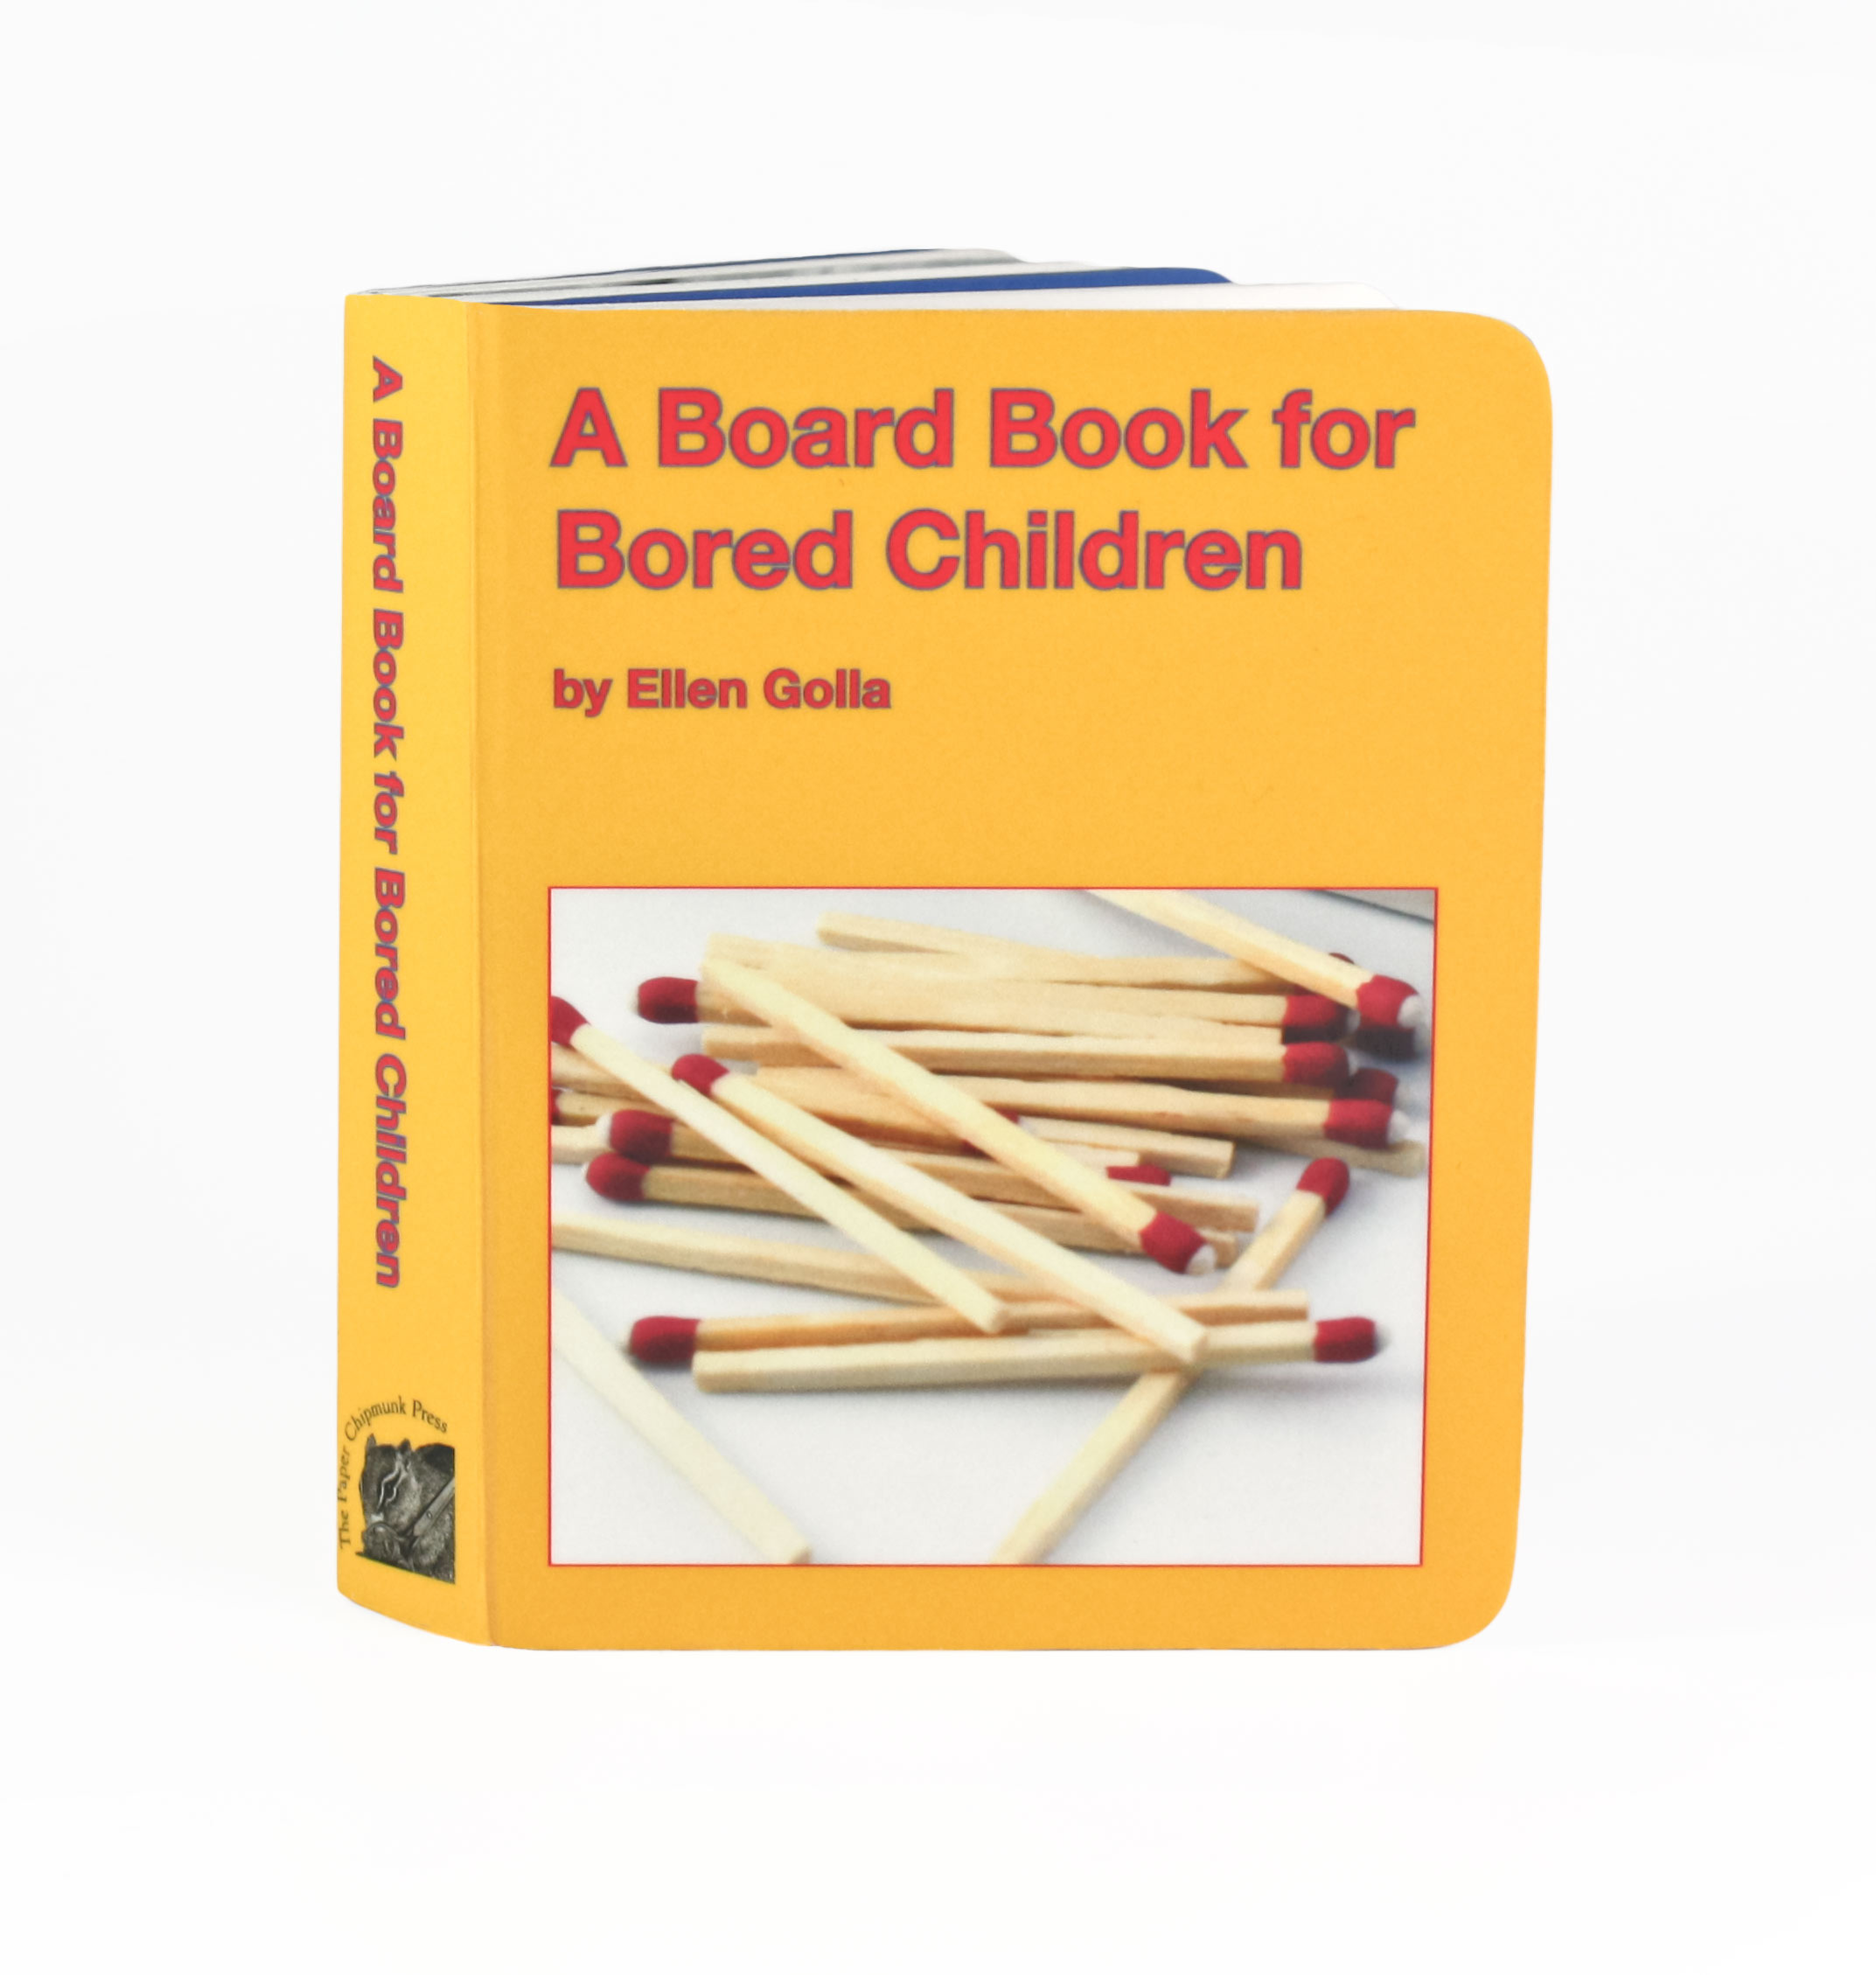 A Board Book for Bored Children